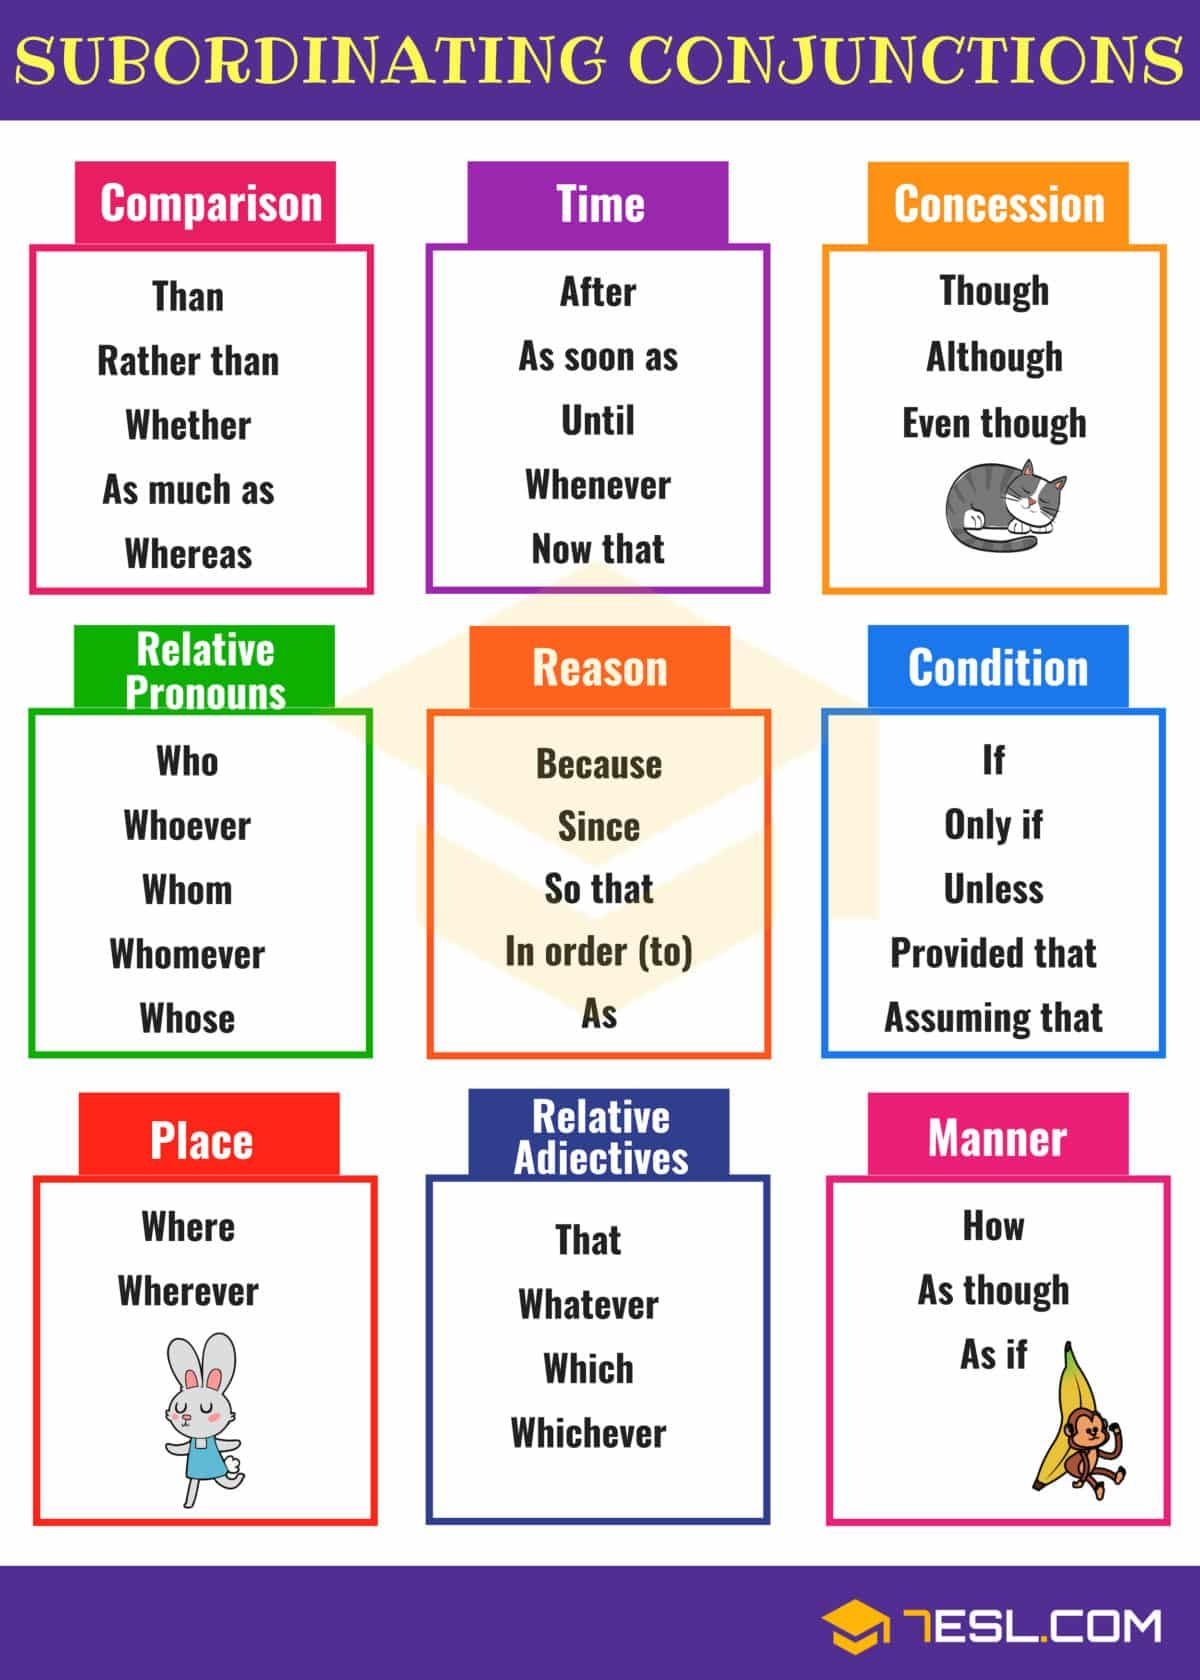 Subordinating Conjunctions Useful List And Examples